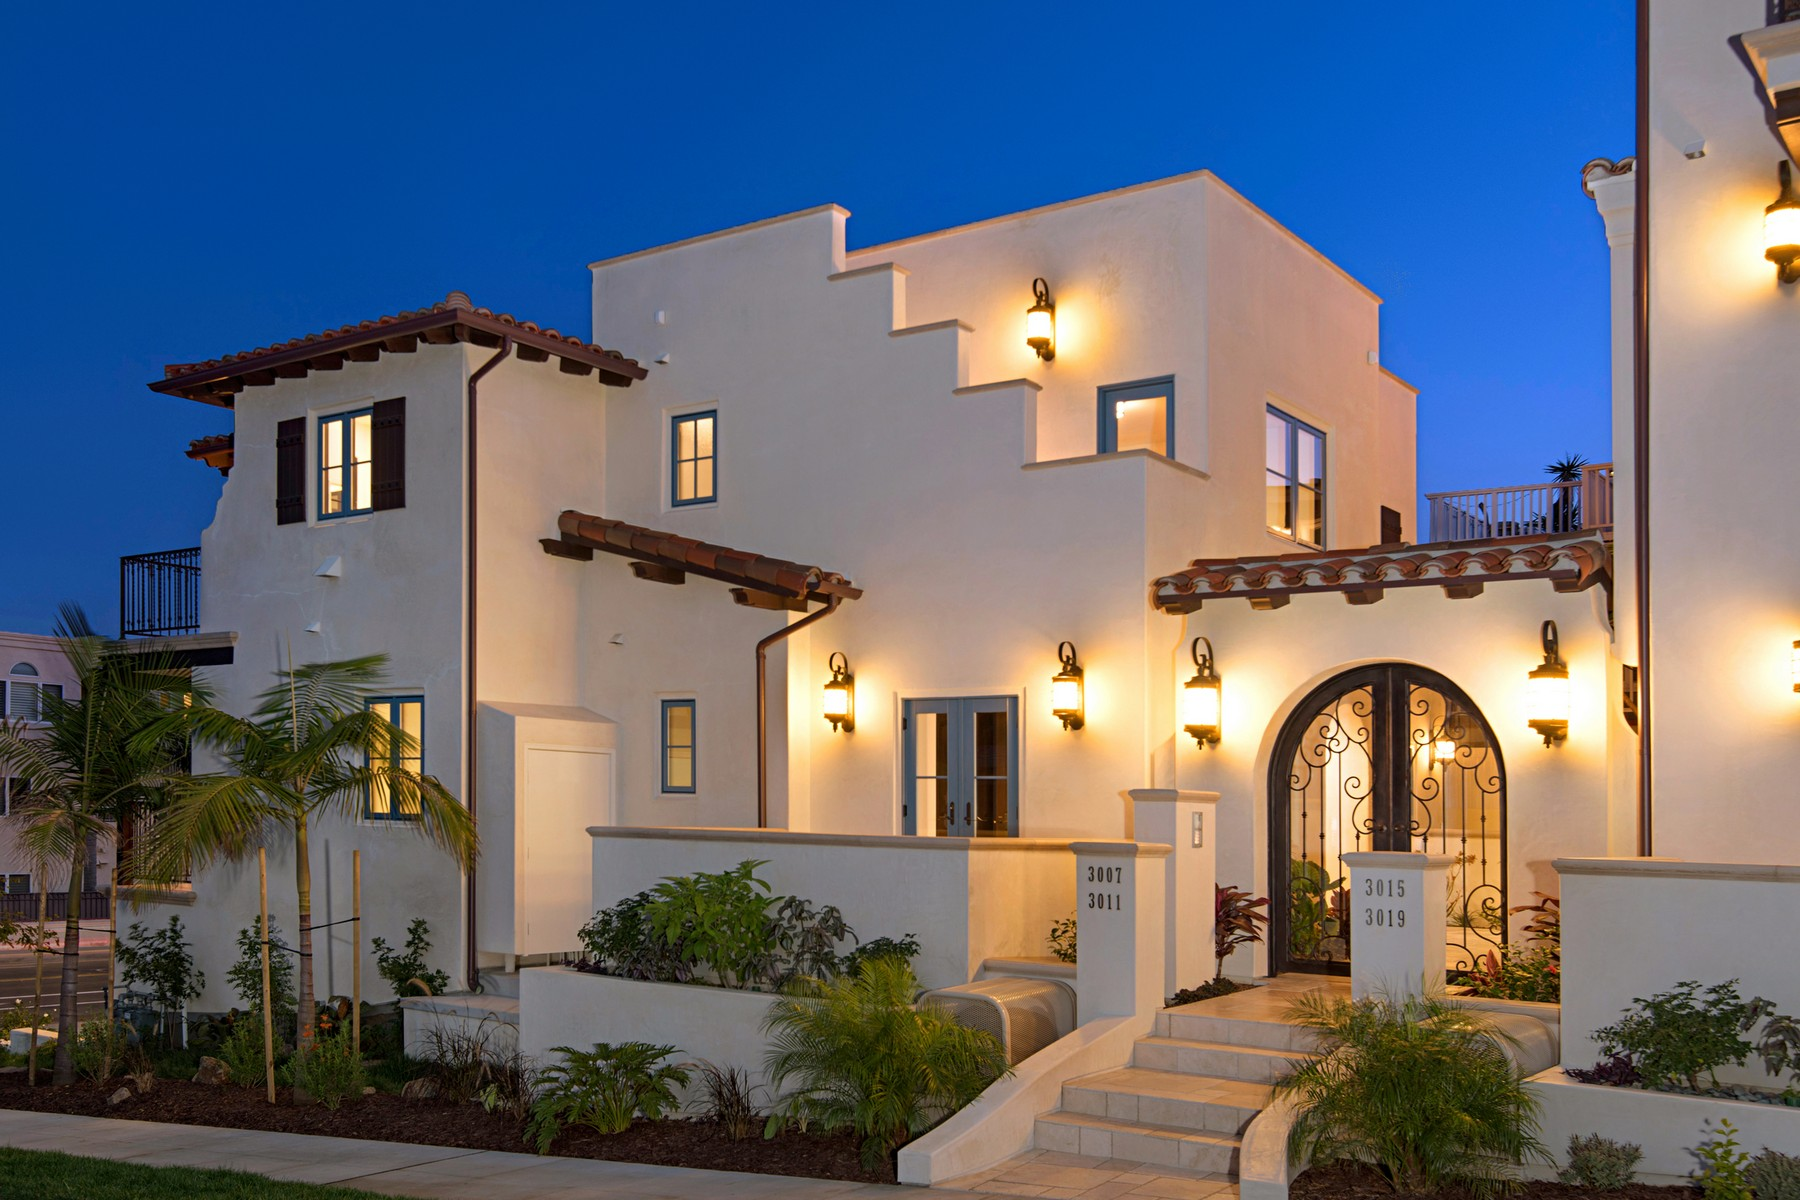 Townhouse for Sale at 3007 Lawrence Street San Diego, California 92106 United States